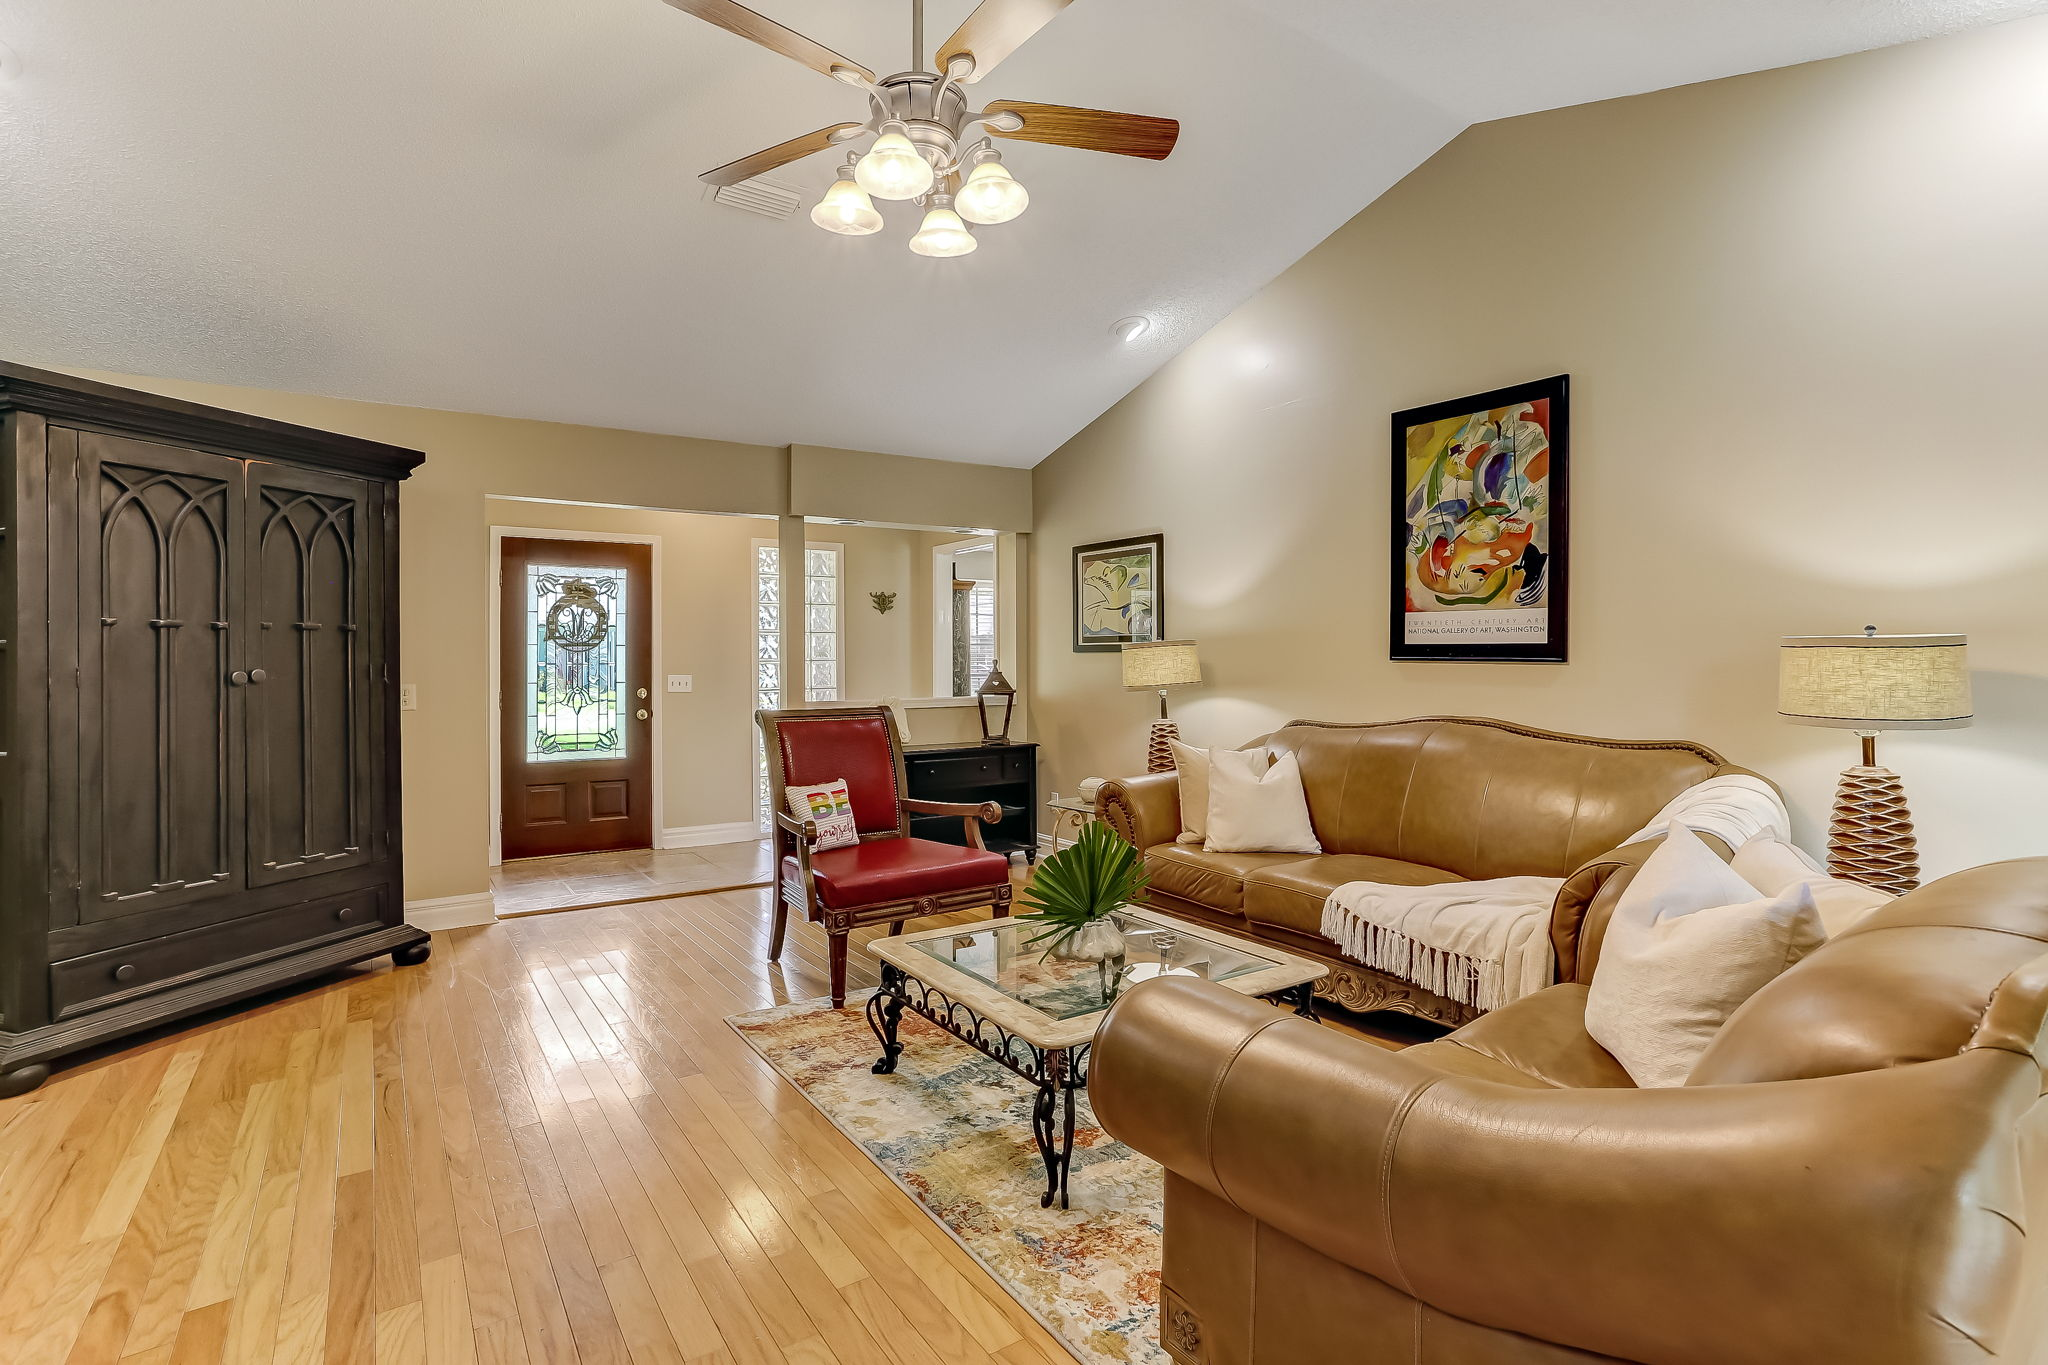 Gorgeous REAL hardwood floors throughout living area